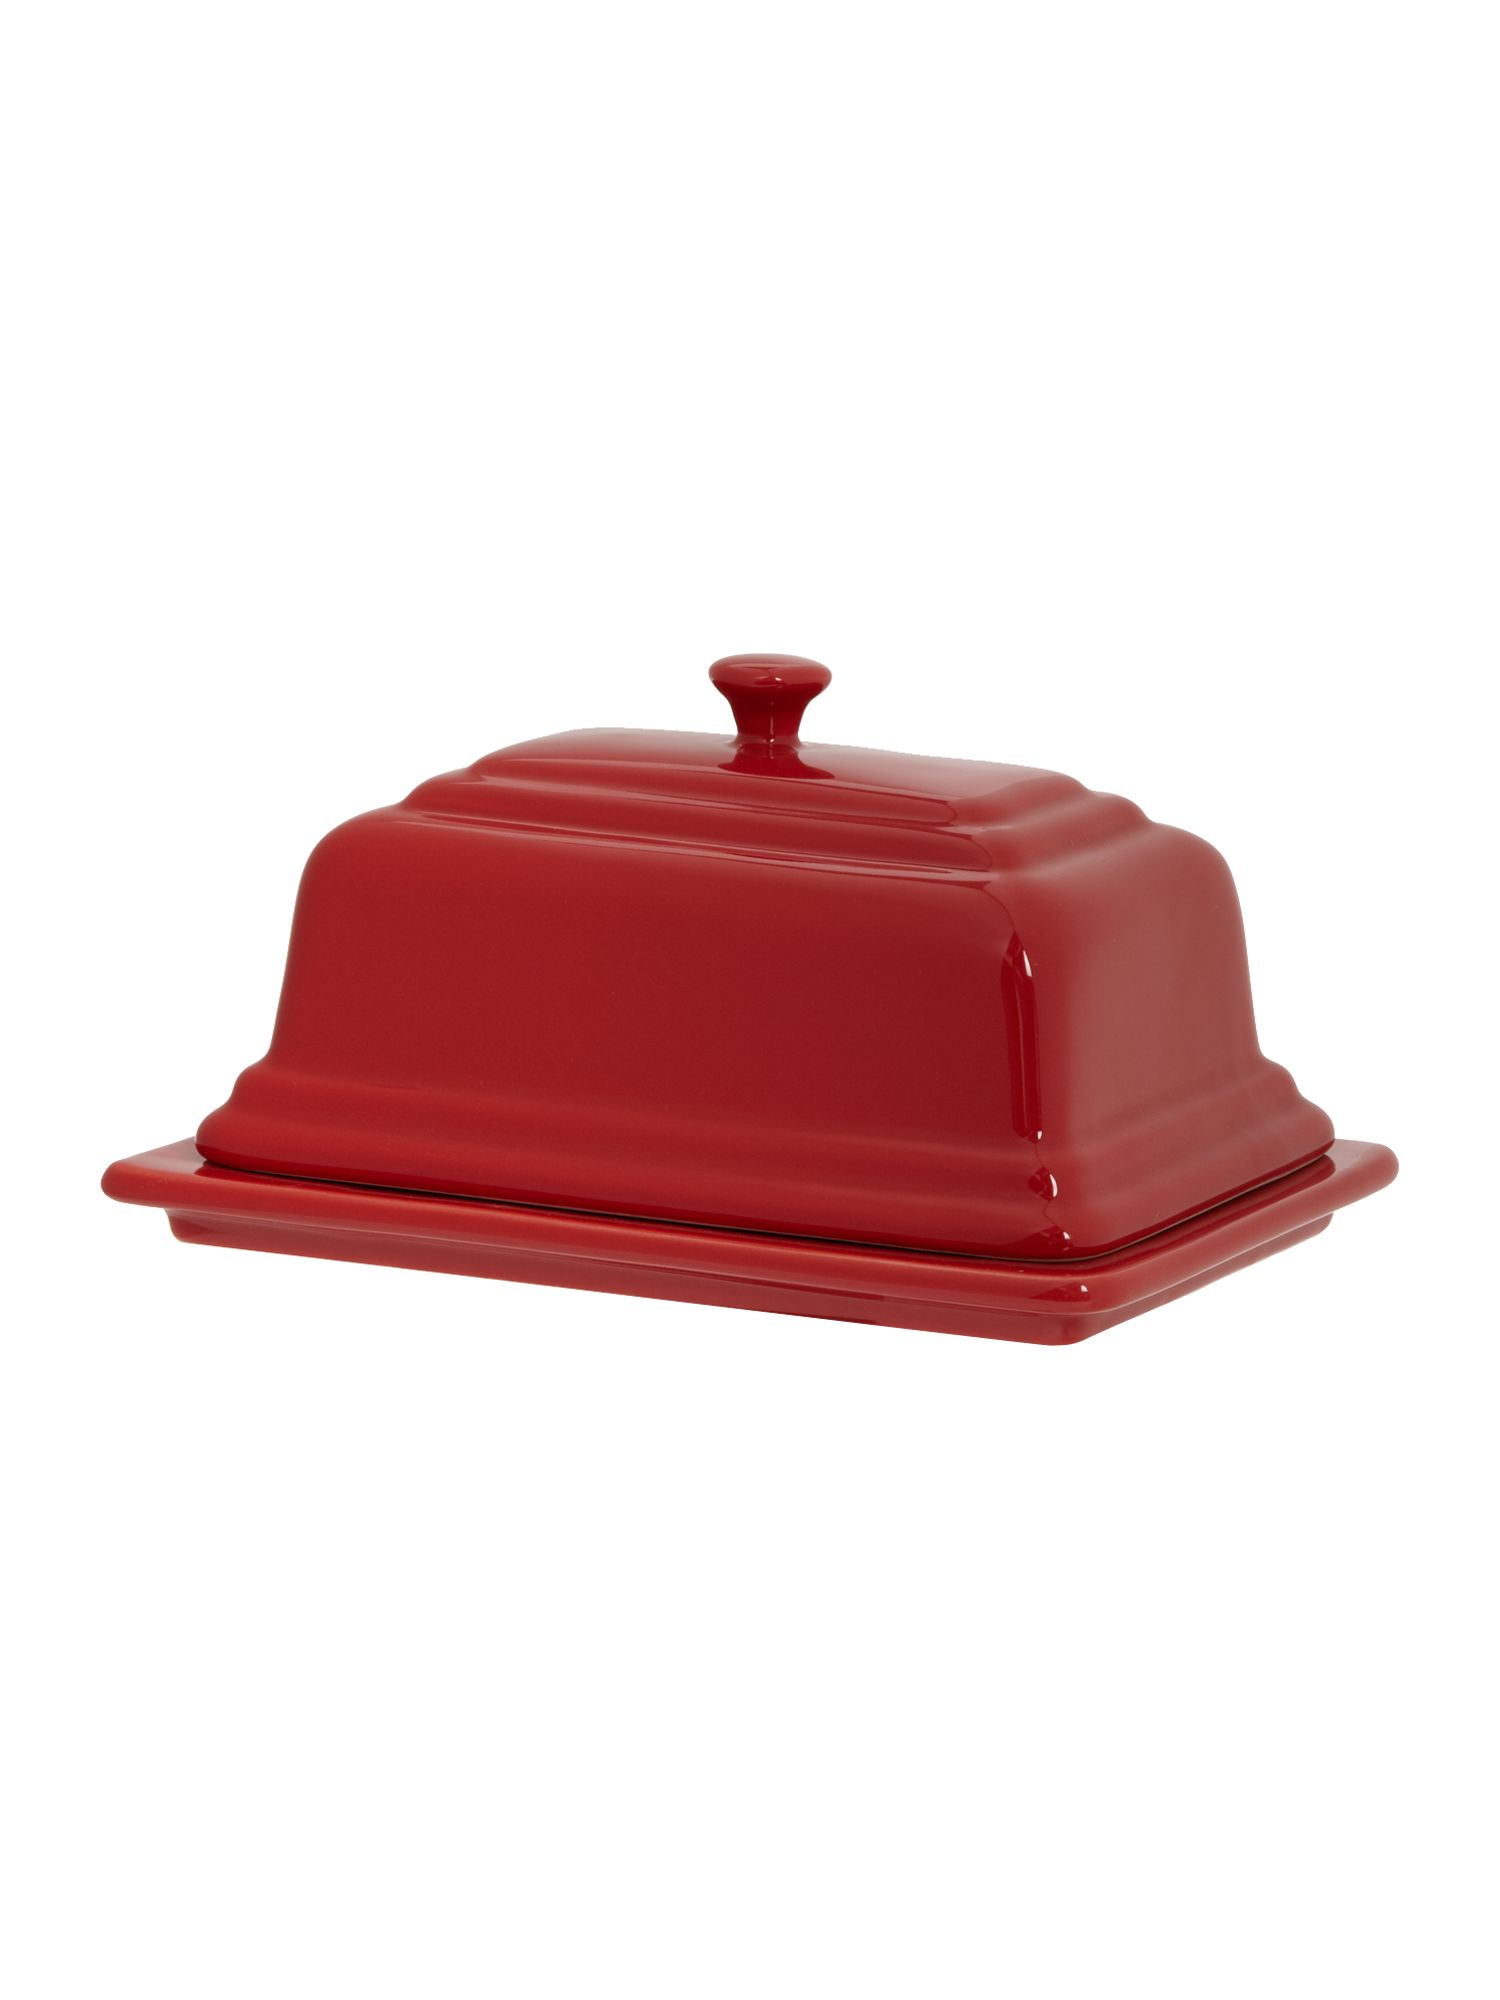 Maison butter dish, Red